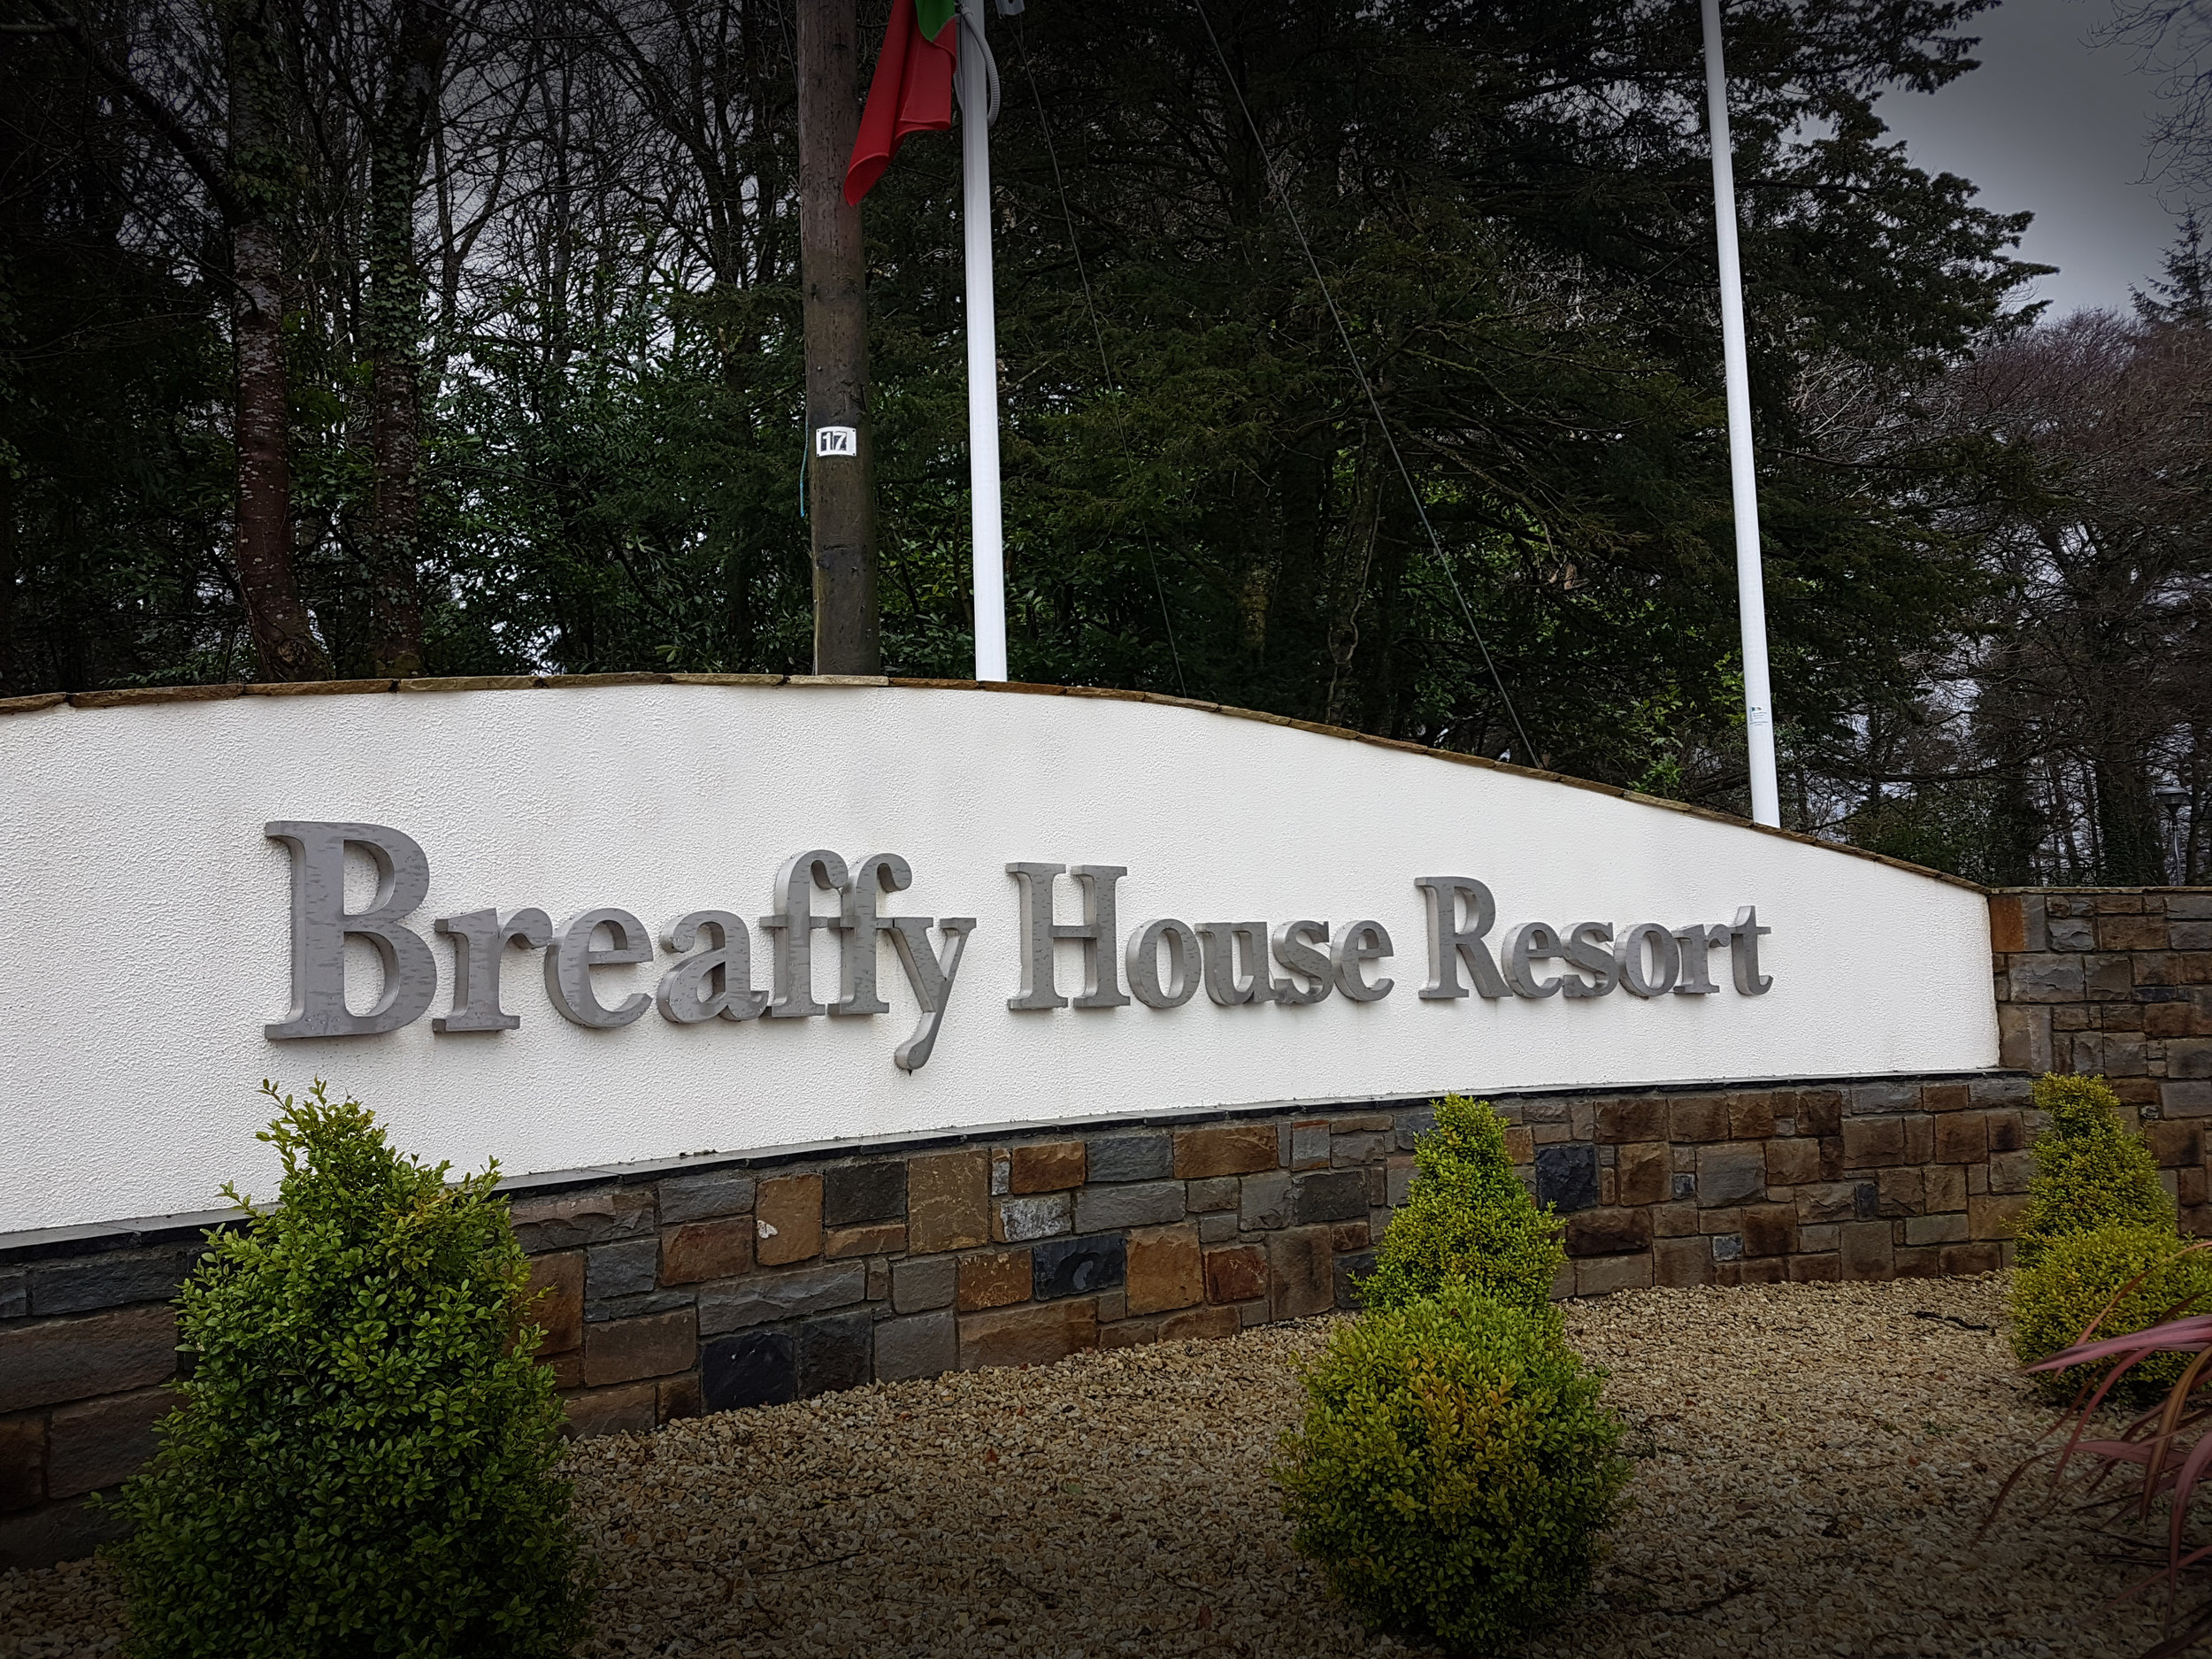 breaffy house Resort.jpg